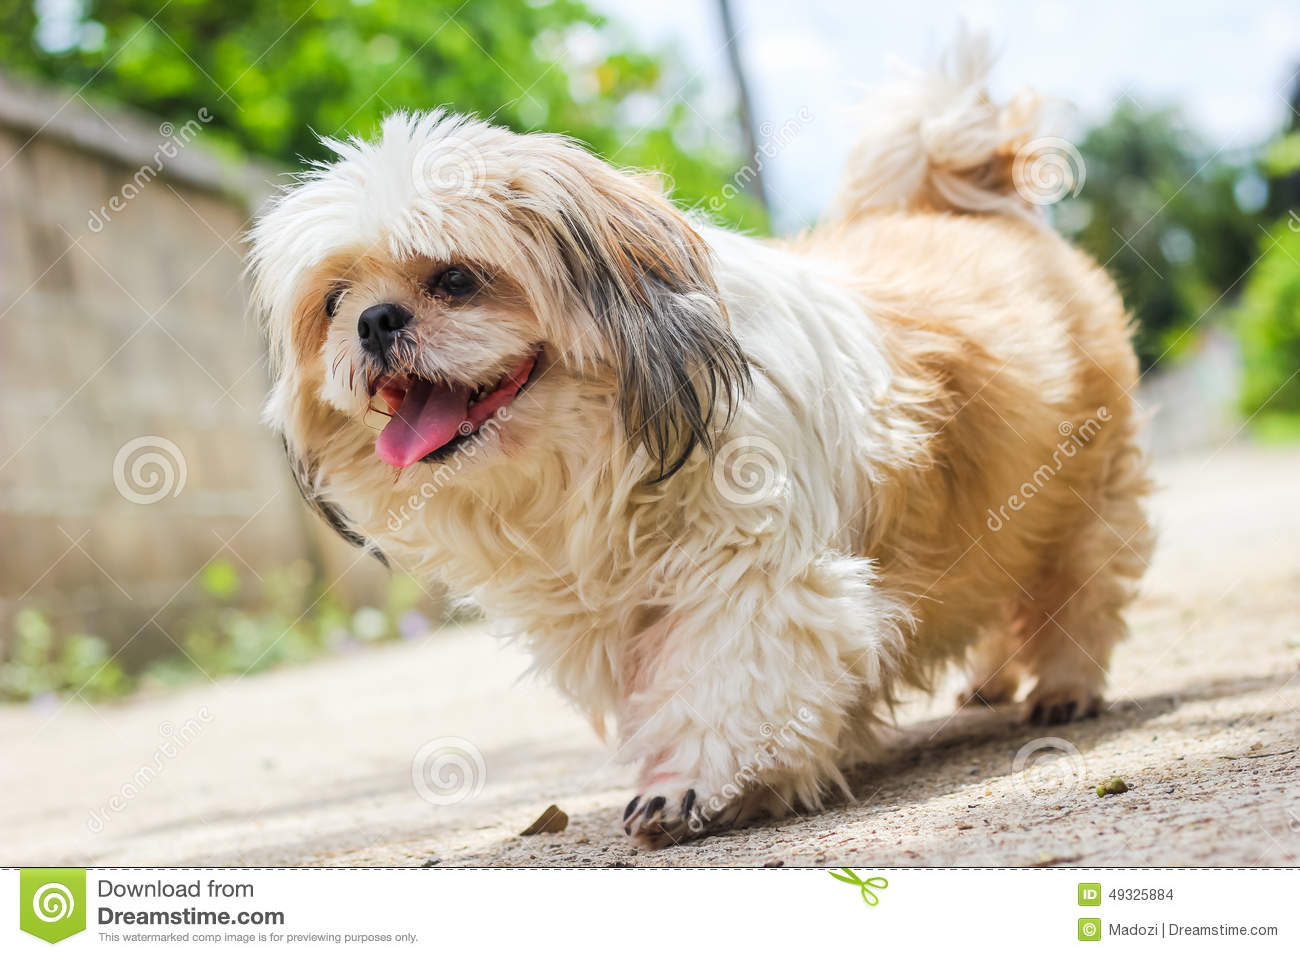 Cute Shih Tzu Dog Walking Stock Photo Image Of Caring 49325884